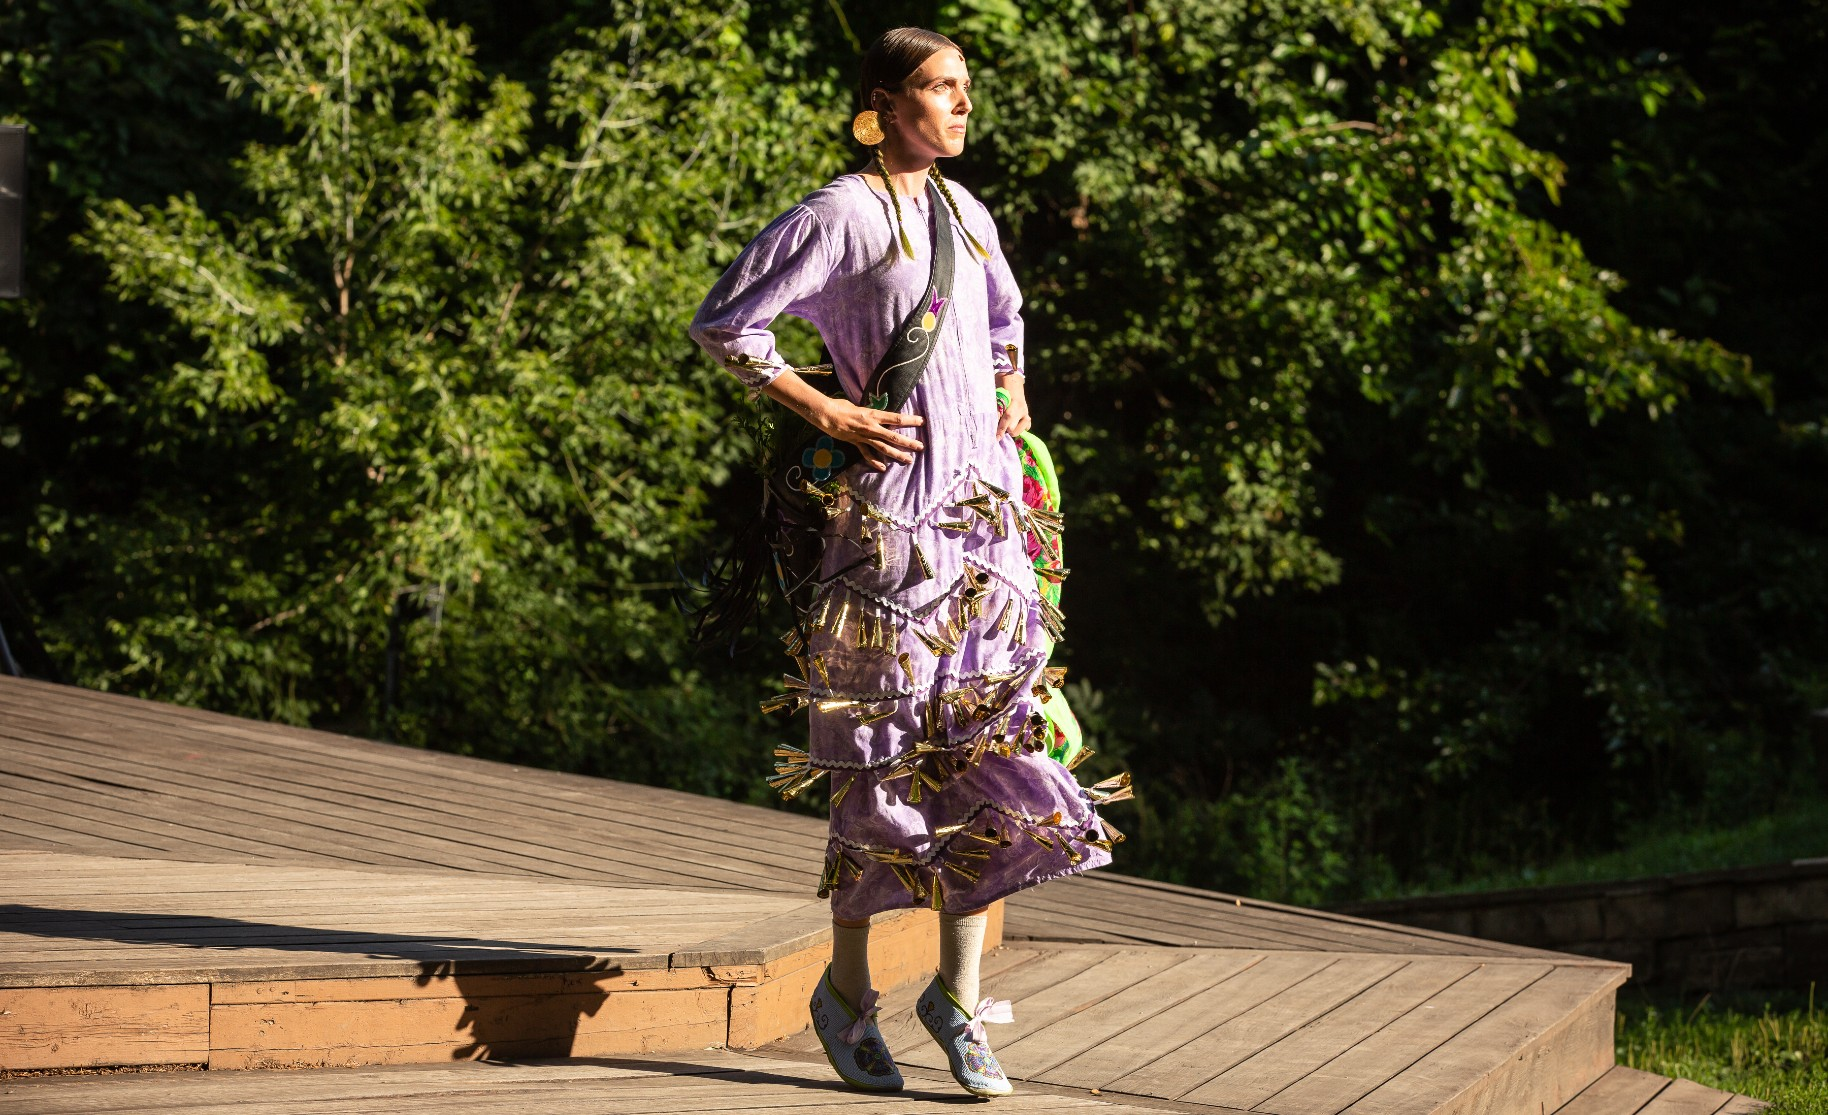 A performer stands on their toes at the edge of a wooden stage surrounded by trees. They are wearing a light purple dress with many small bells sewn onto the lower half, their long brown hair is in braids.